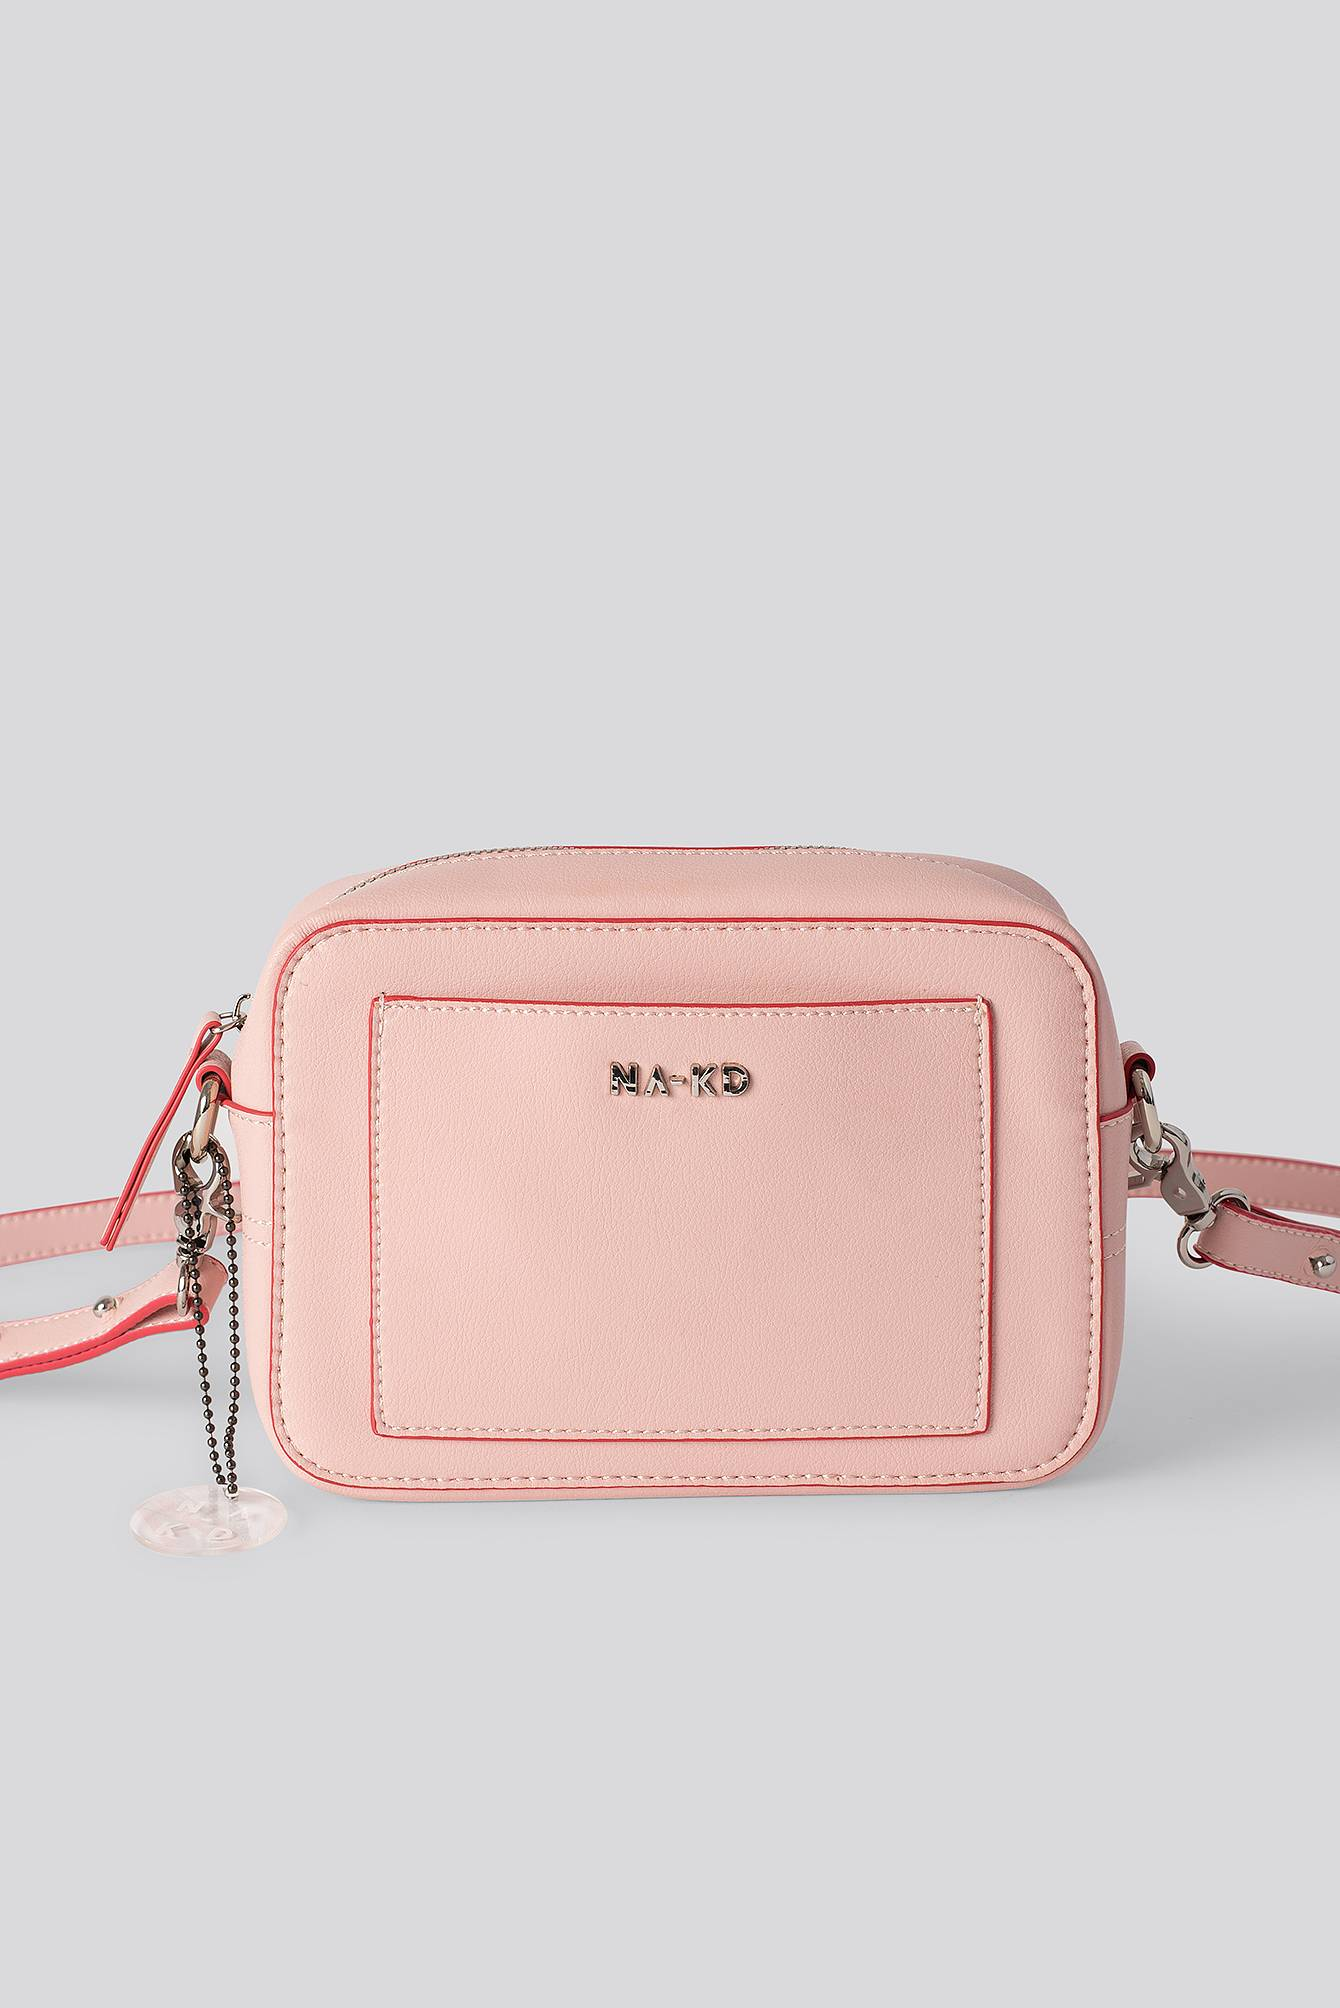 NA-KD Accessories Minimalistic Shoulder Bag - Pink  - Size: One Size